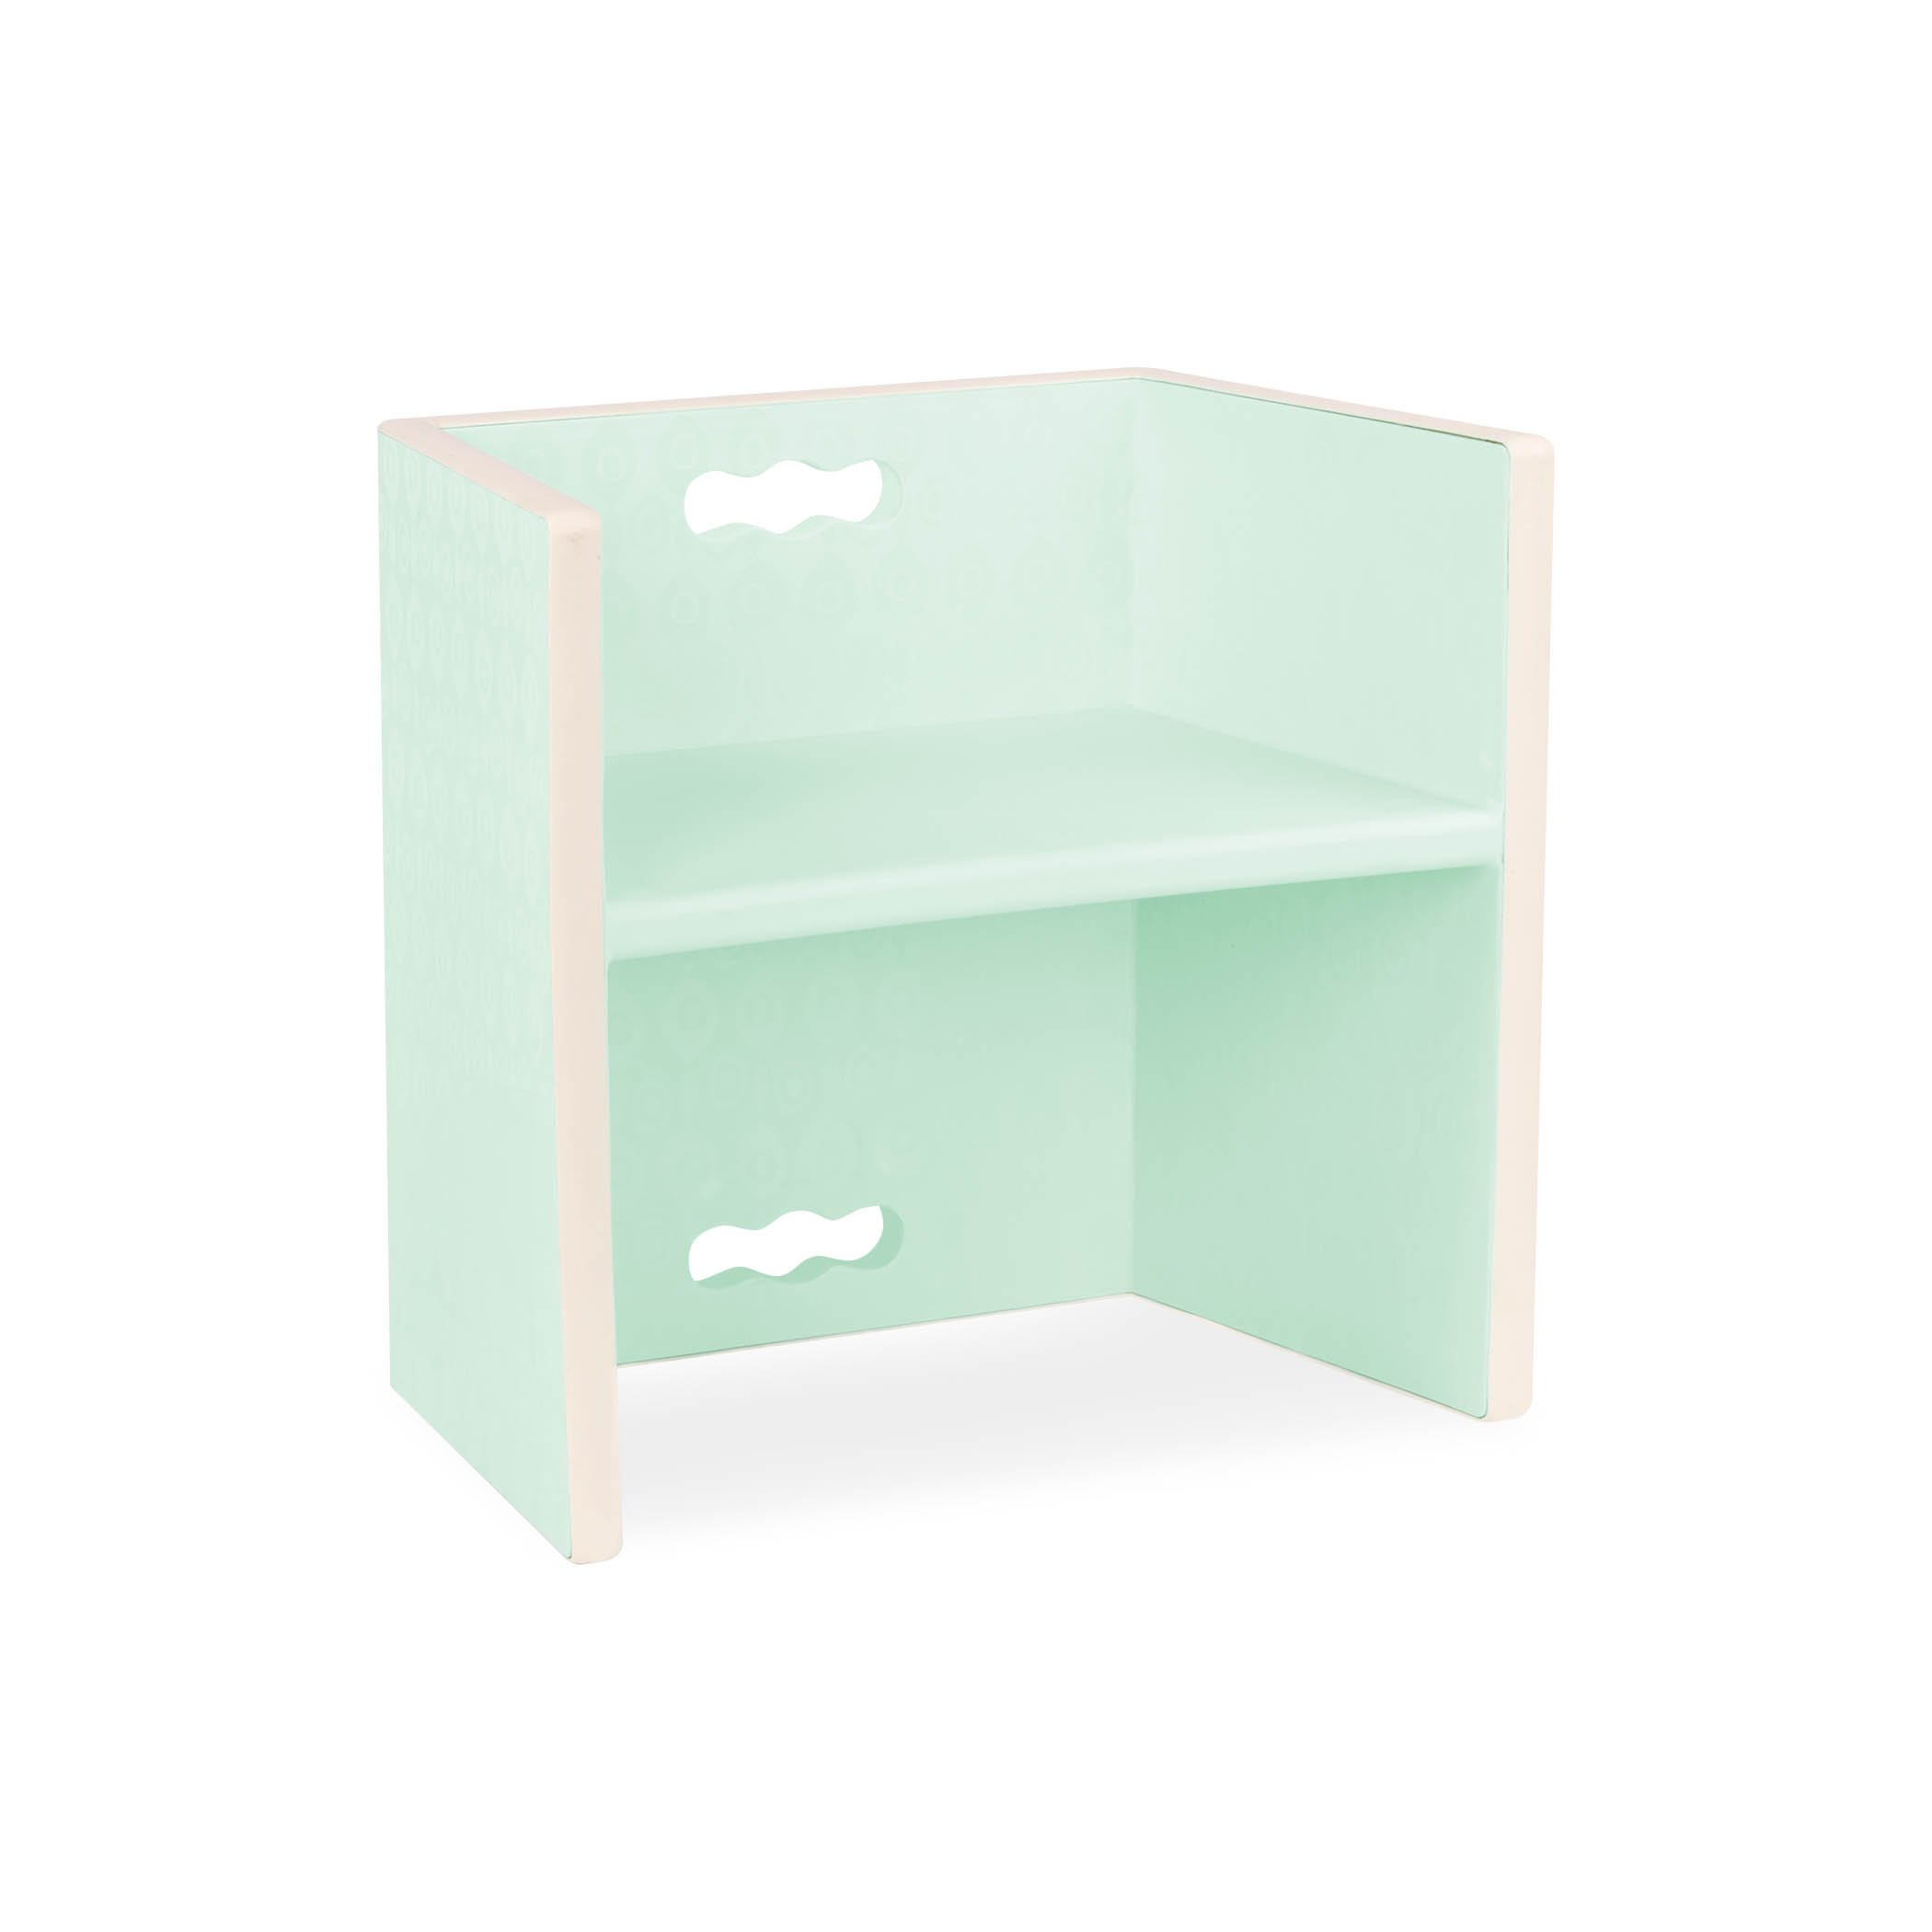 B. spaces by Battat – Chair Stair 3 in 1 – Toddler Chair and Step Stool Kids Furniture – Trendy Soft Mint